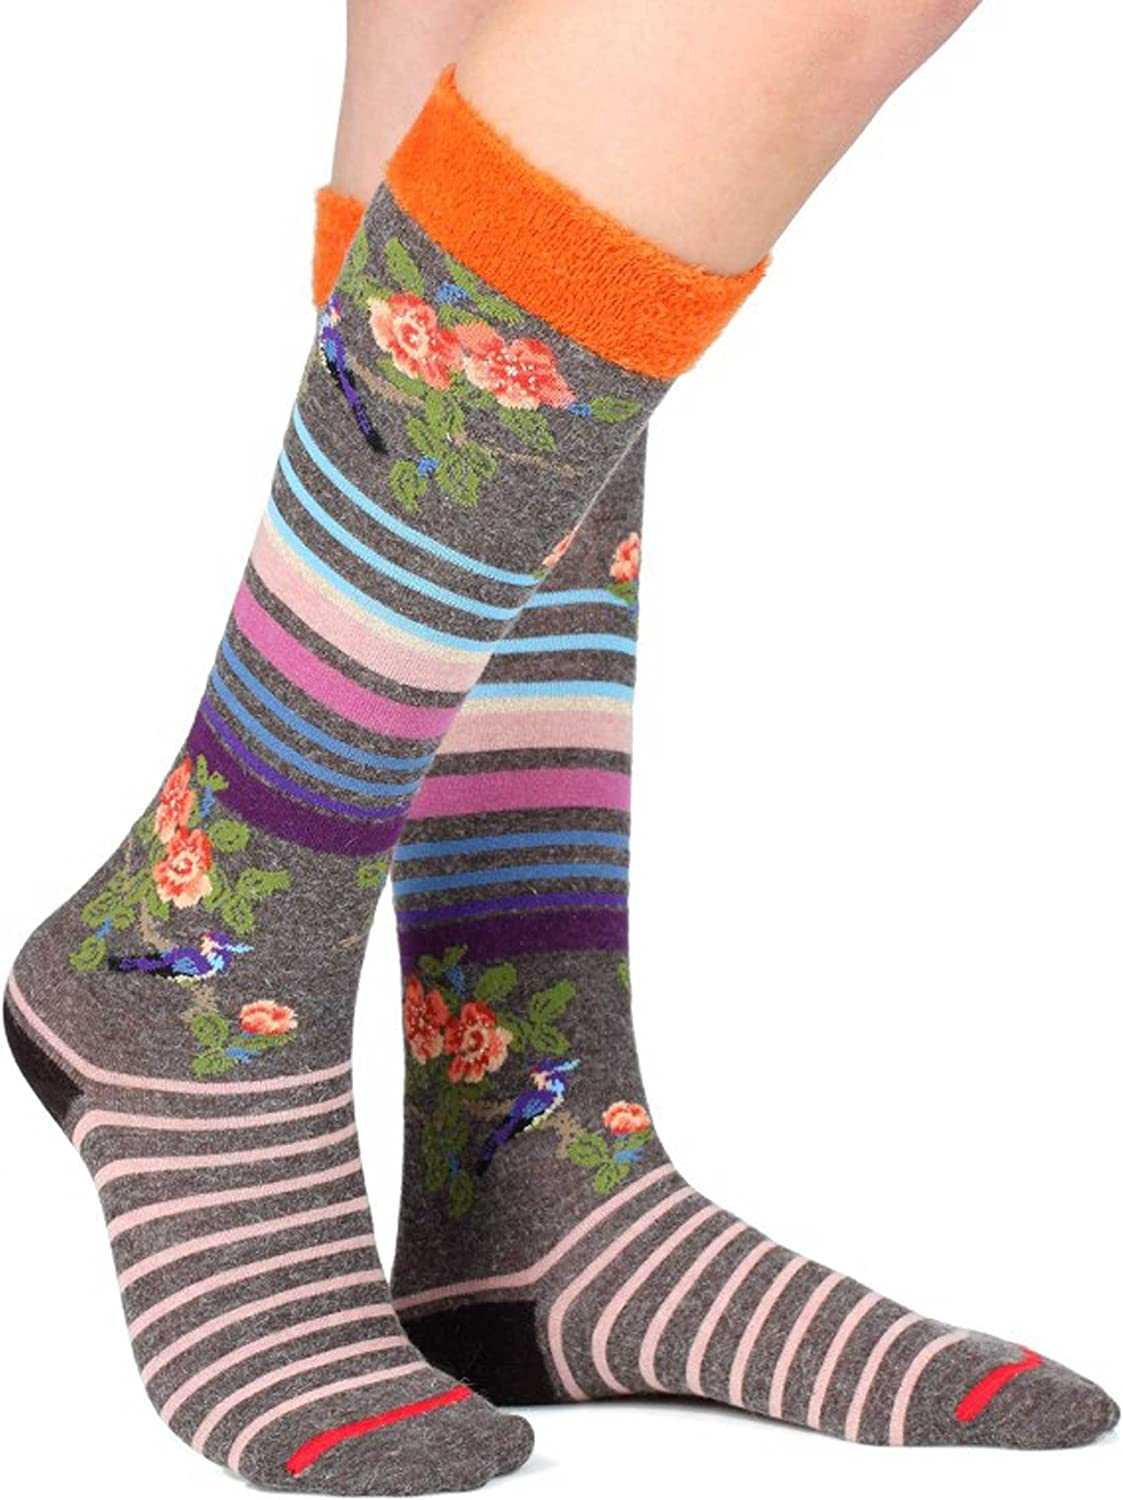 Dub & Drino France Women's Arm Warmers Fun Colorful Geometric and Floral Prints